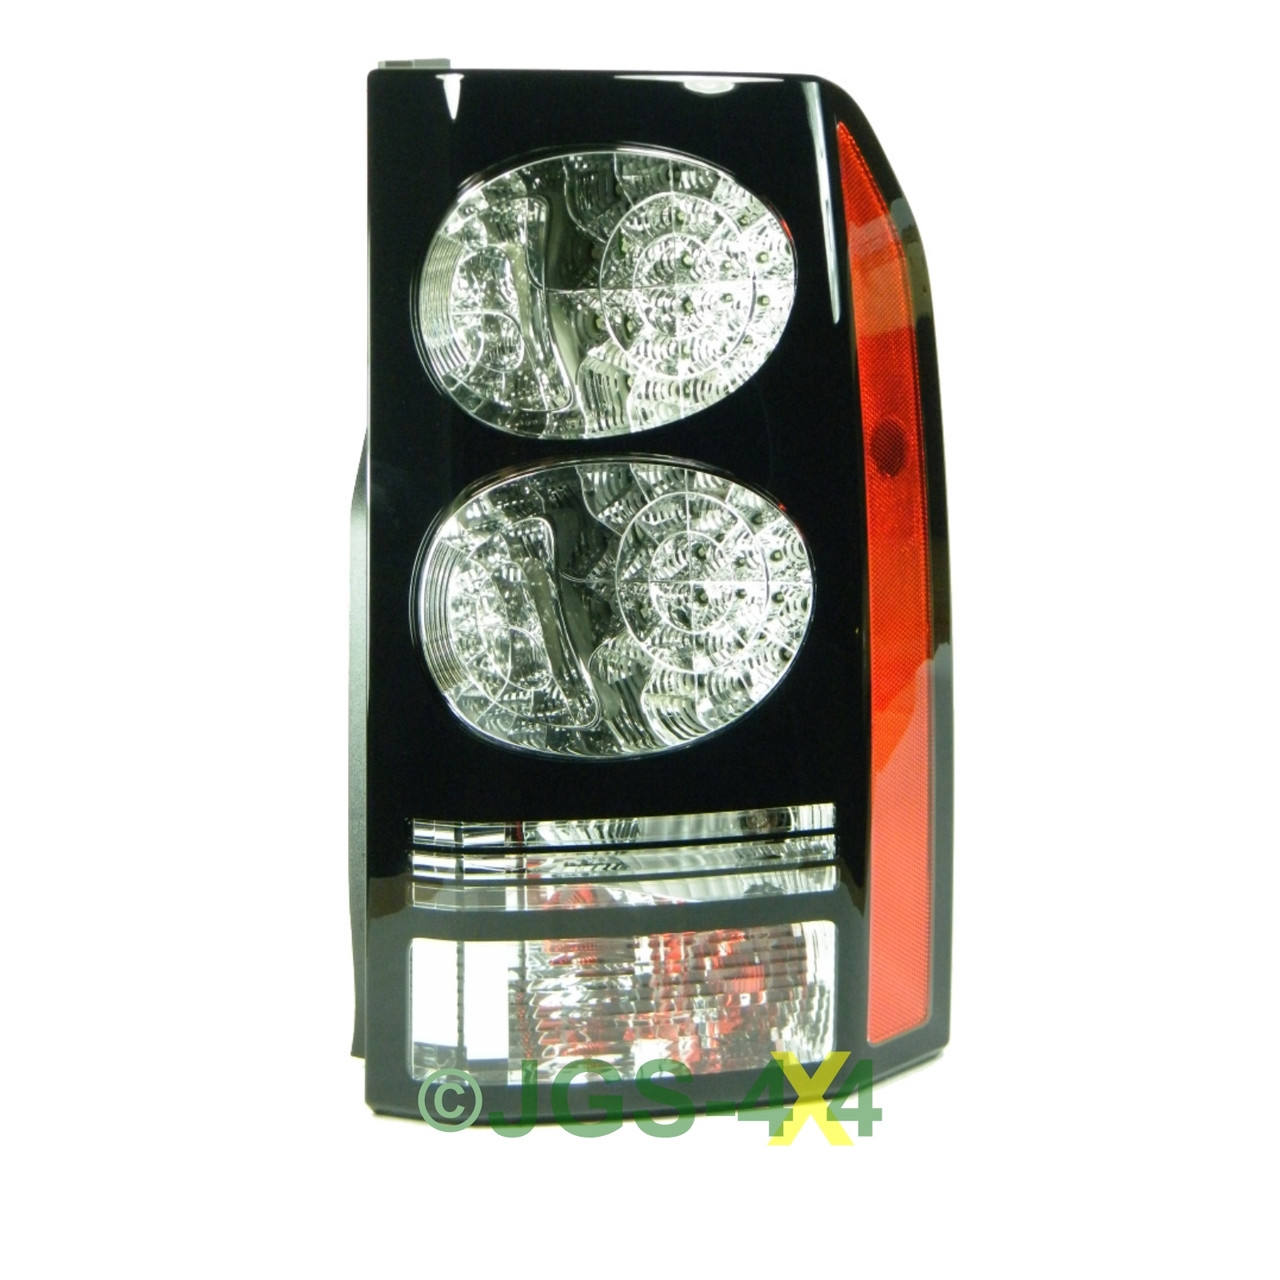 LR052397 LAND ROVER DISCOVERY 4 N//S OEM VALEO REAR BLACK LED TAIL LIGHT LAMP